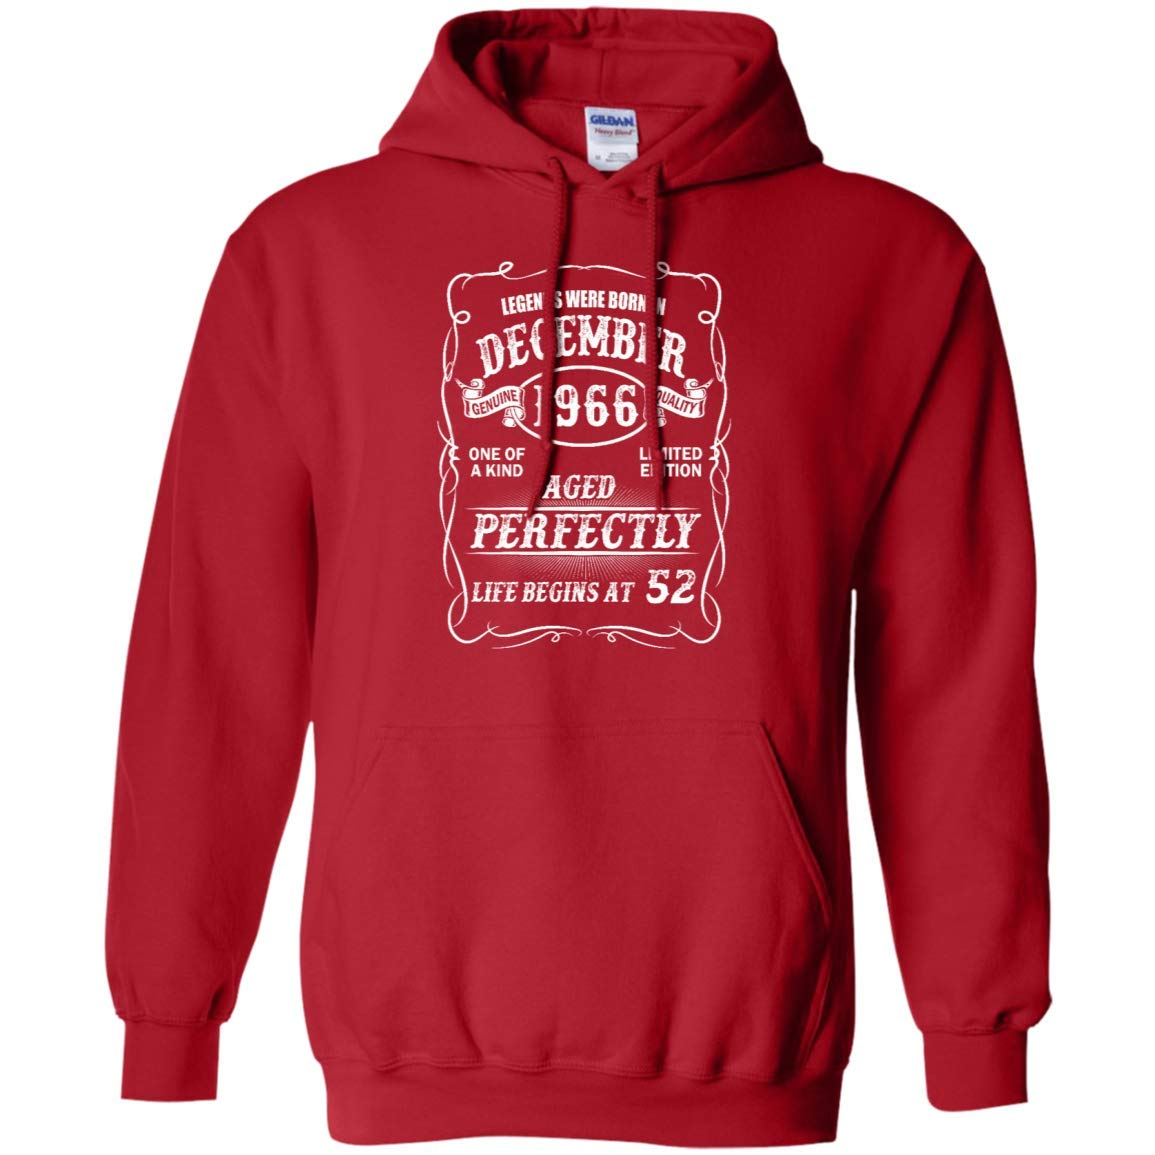 Red Small Awesome Shirts Funny Legends December 1966 Life Begins at 52